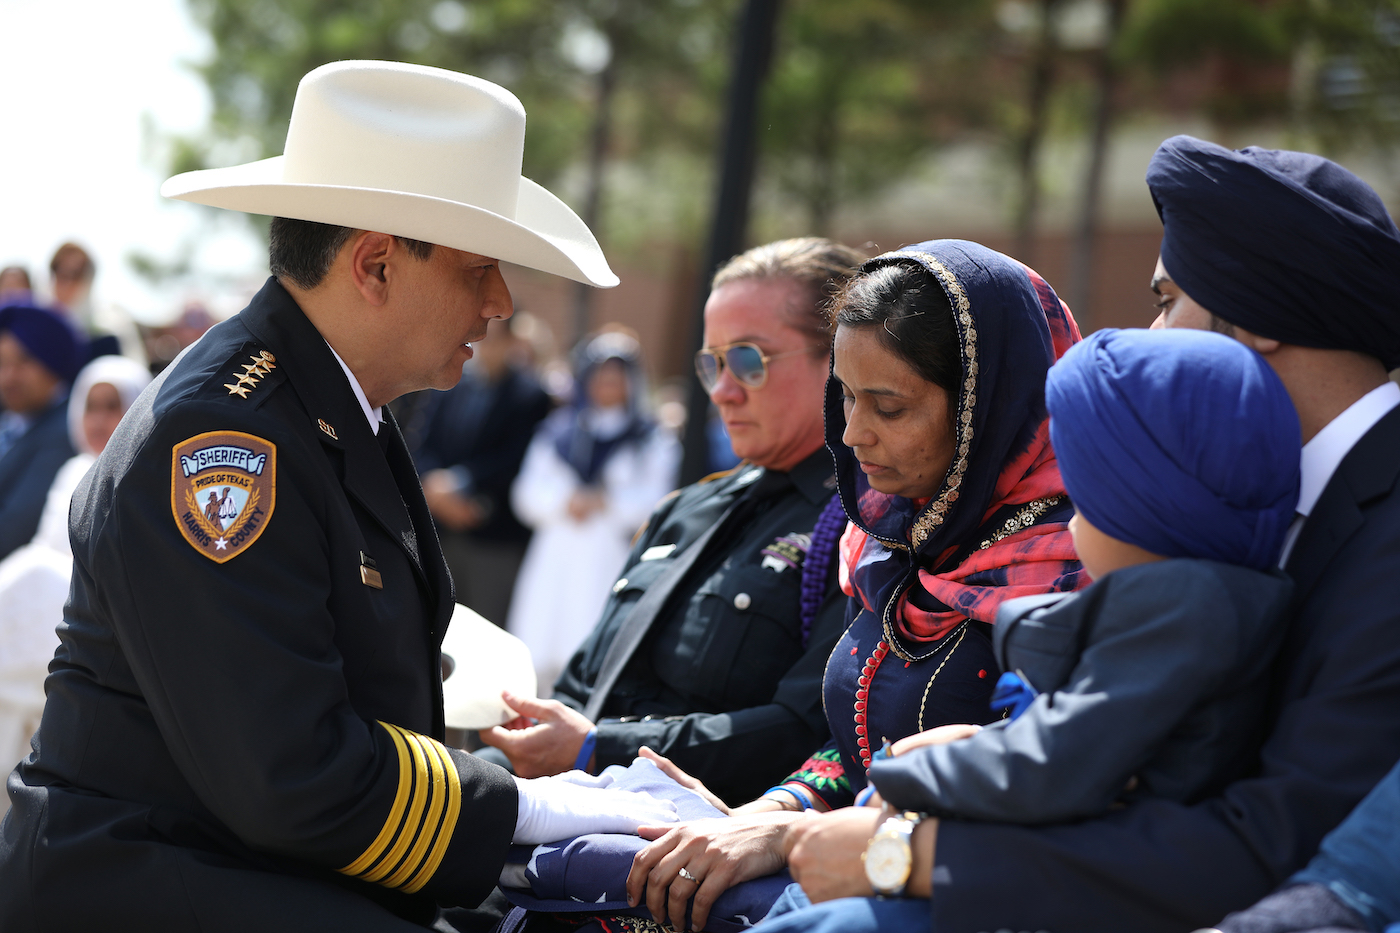 Thousands gathered for services for Deputy Sandeep Dhaliwal at the The Berry Center of Northwest Houston on October 2, 2019. Deputy Dhaliwal was fatally shot while conducting a traffic stop on Friday afternoon.  Photo by Sharon Steinmann/Harris County Sheriff's Office